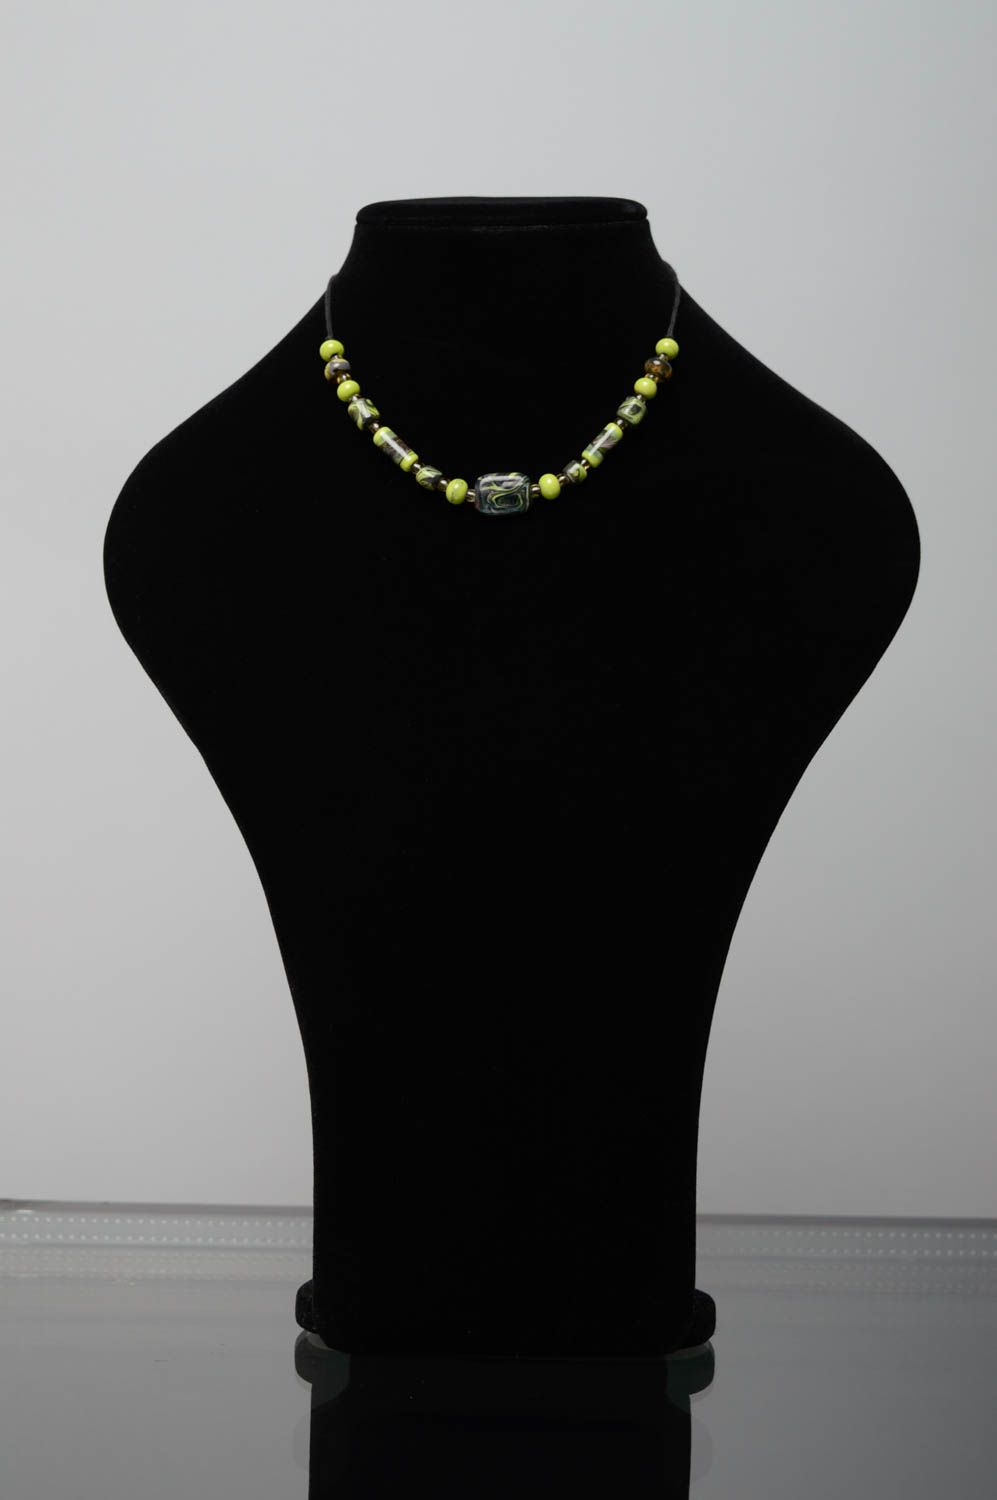 Lampwork glass necklace photo 2